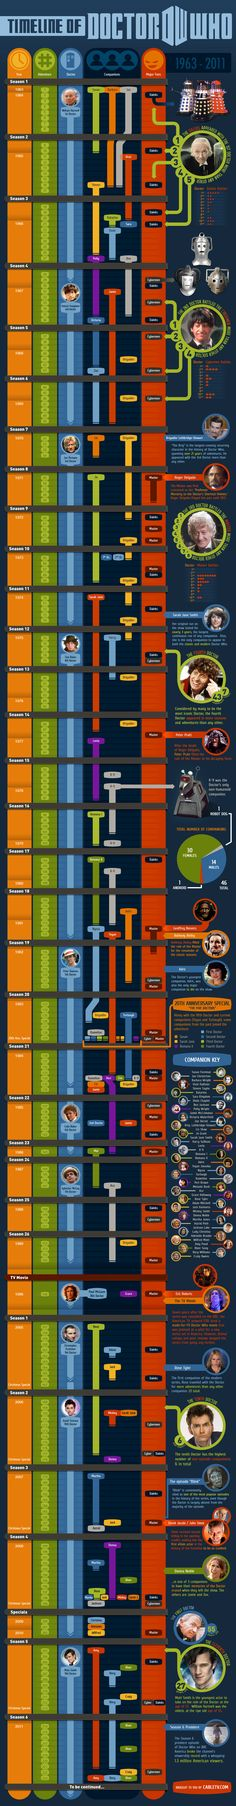 Comprehensive Doctor Who Timeline